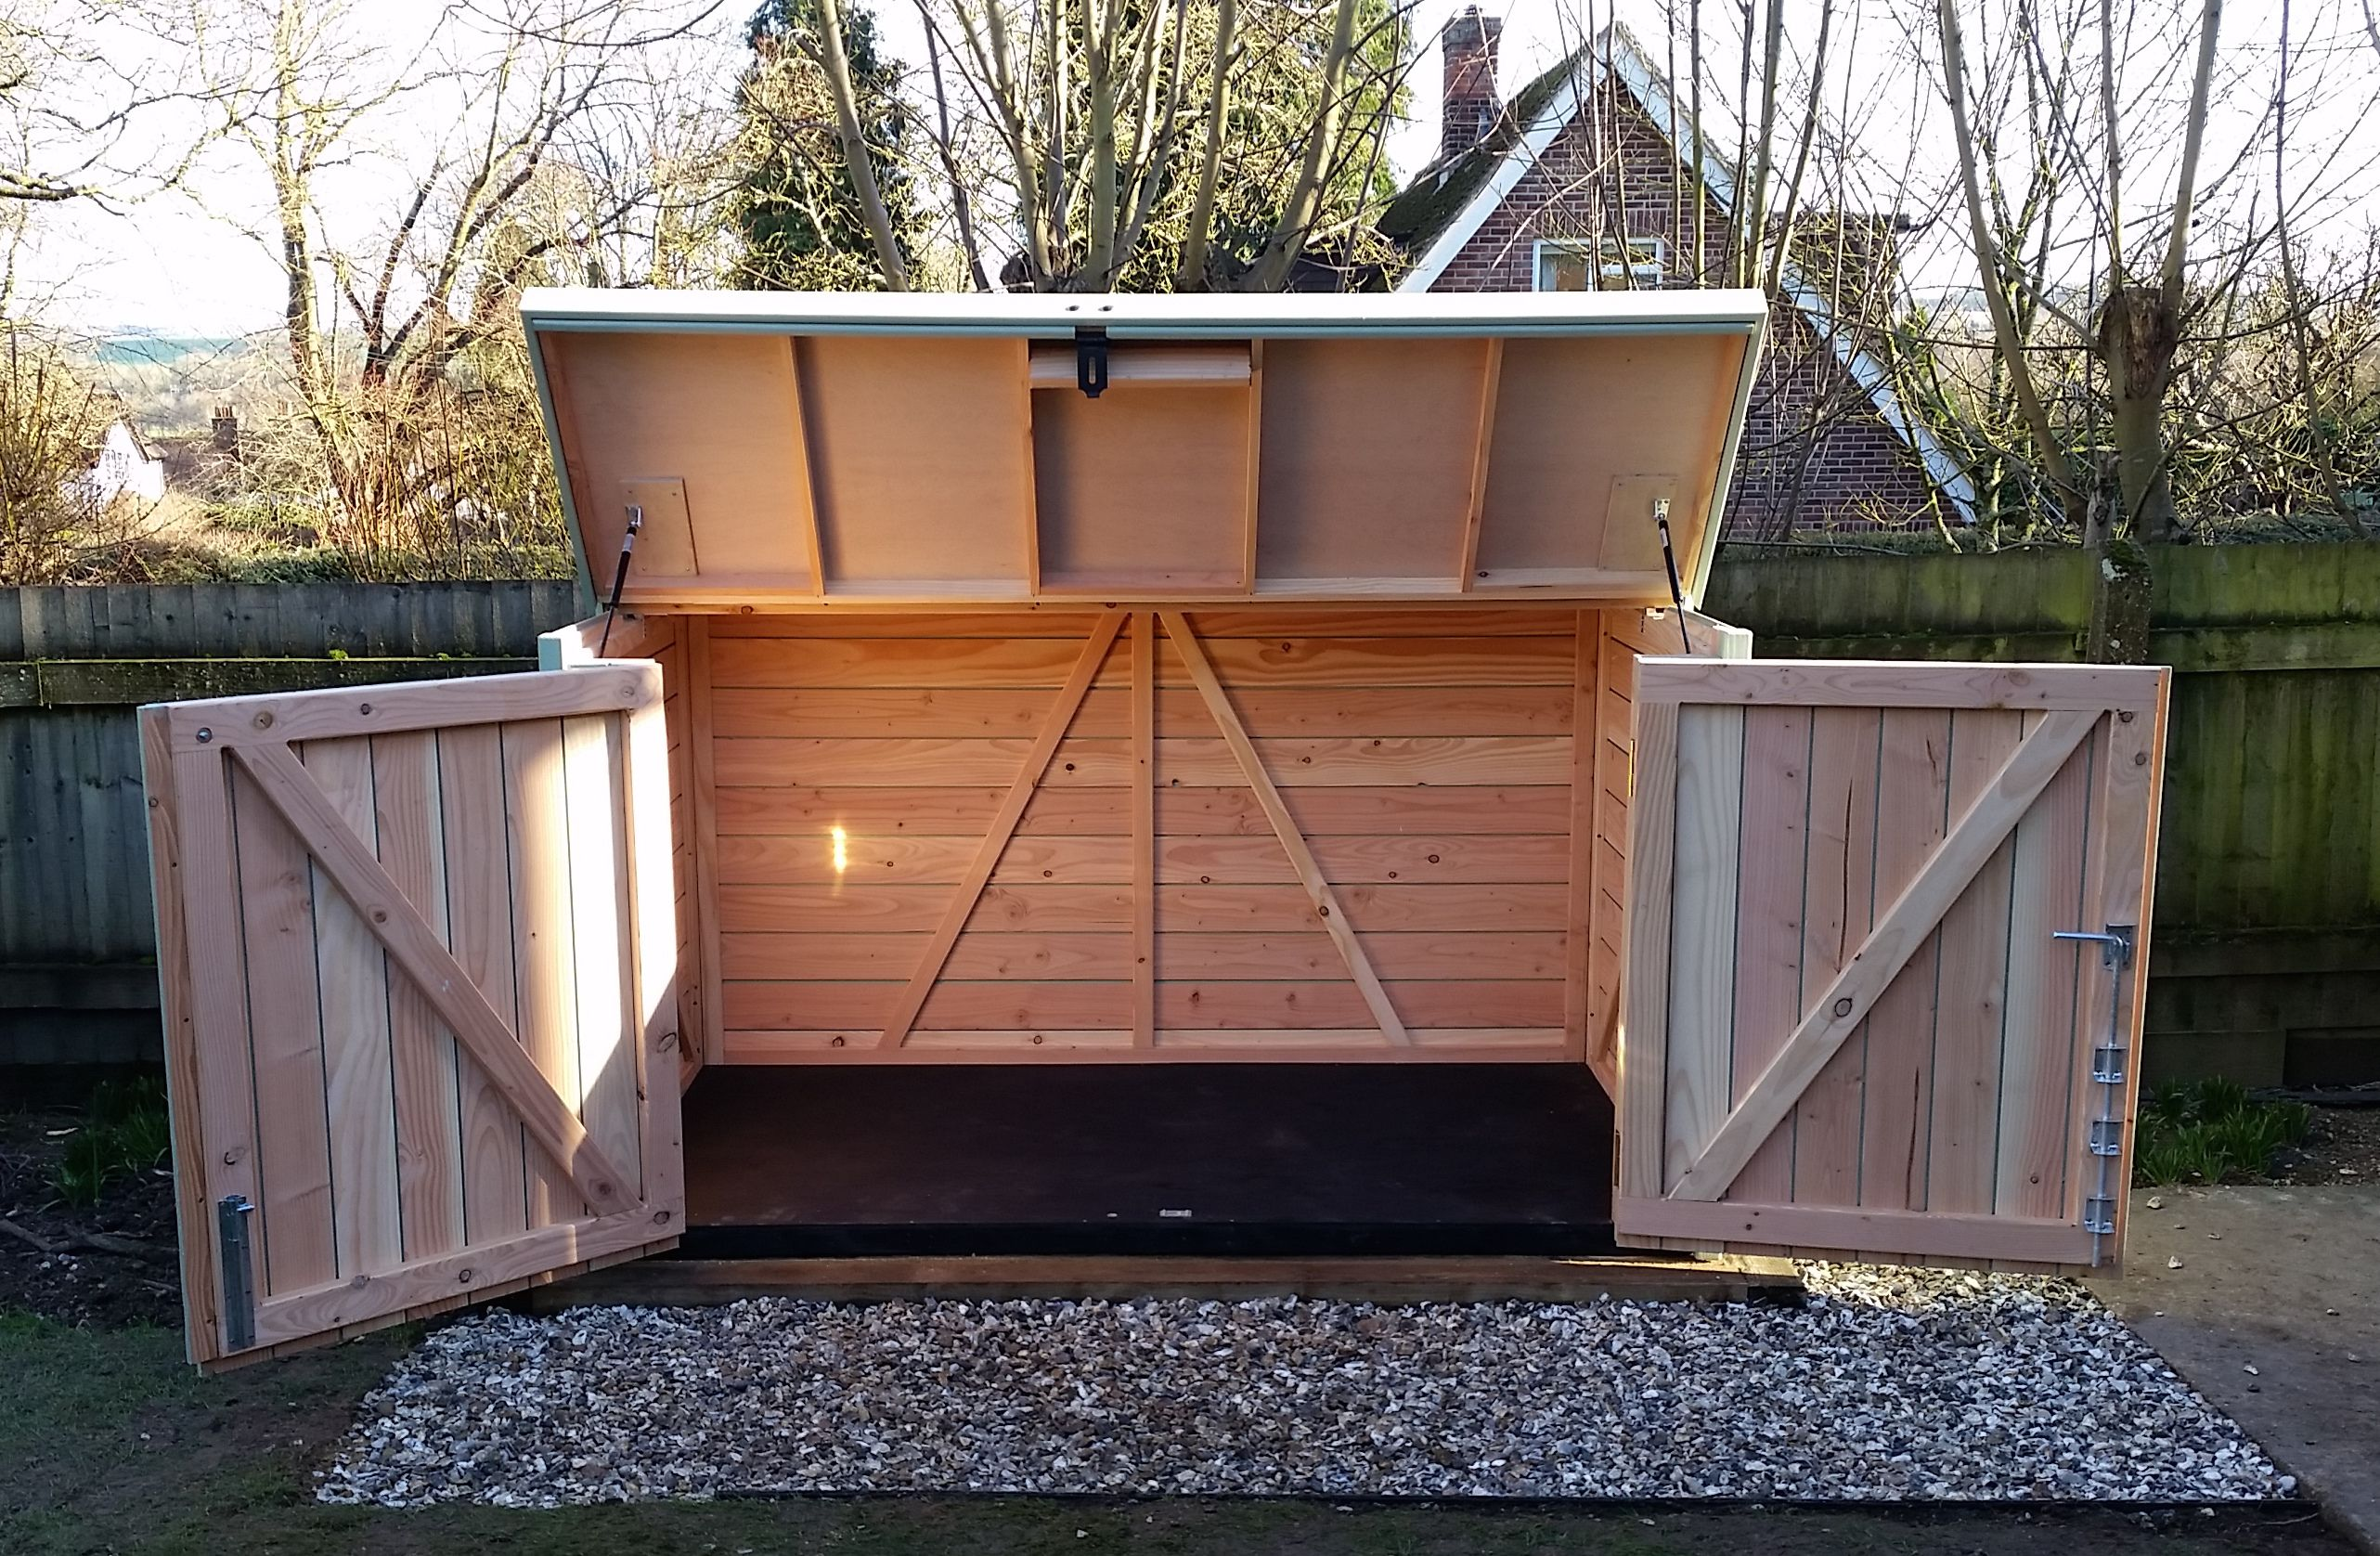 Outdoor Storage Sheds 2217 00 Wood sheds Get the Sheds Quality